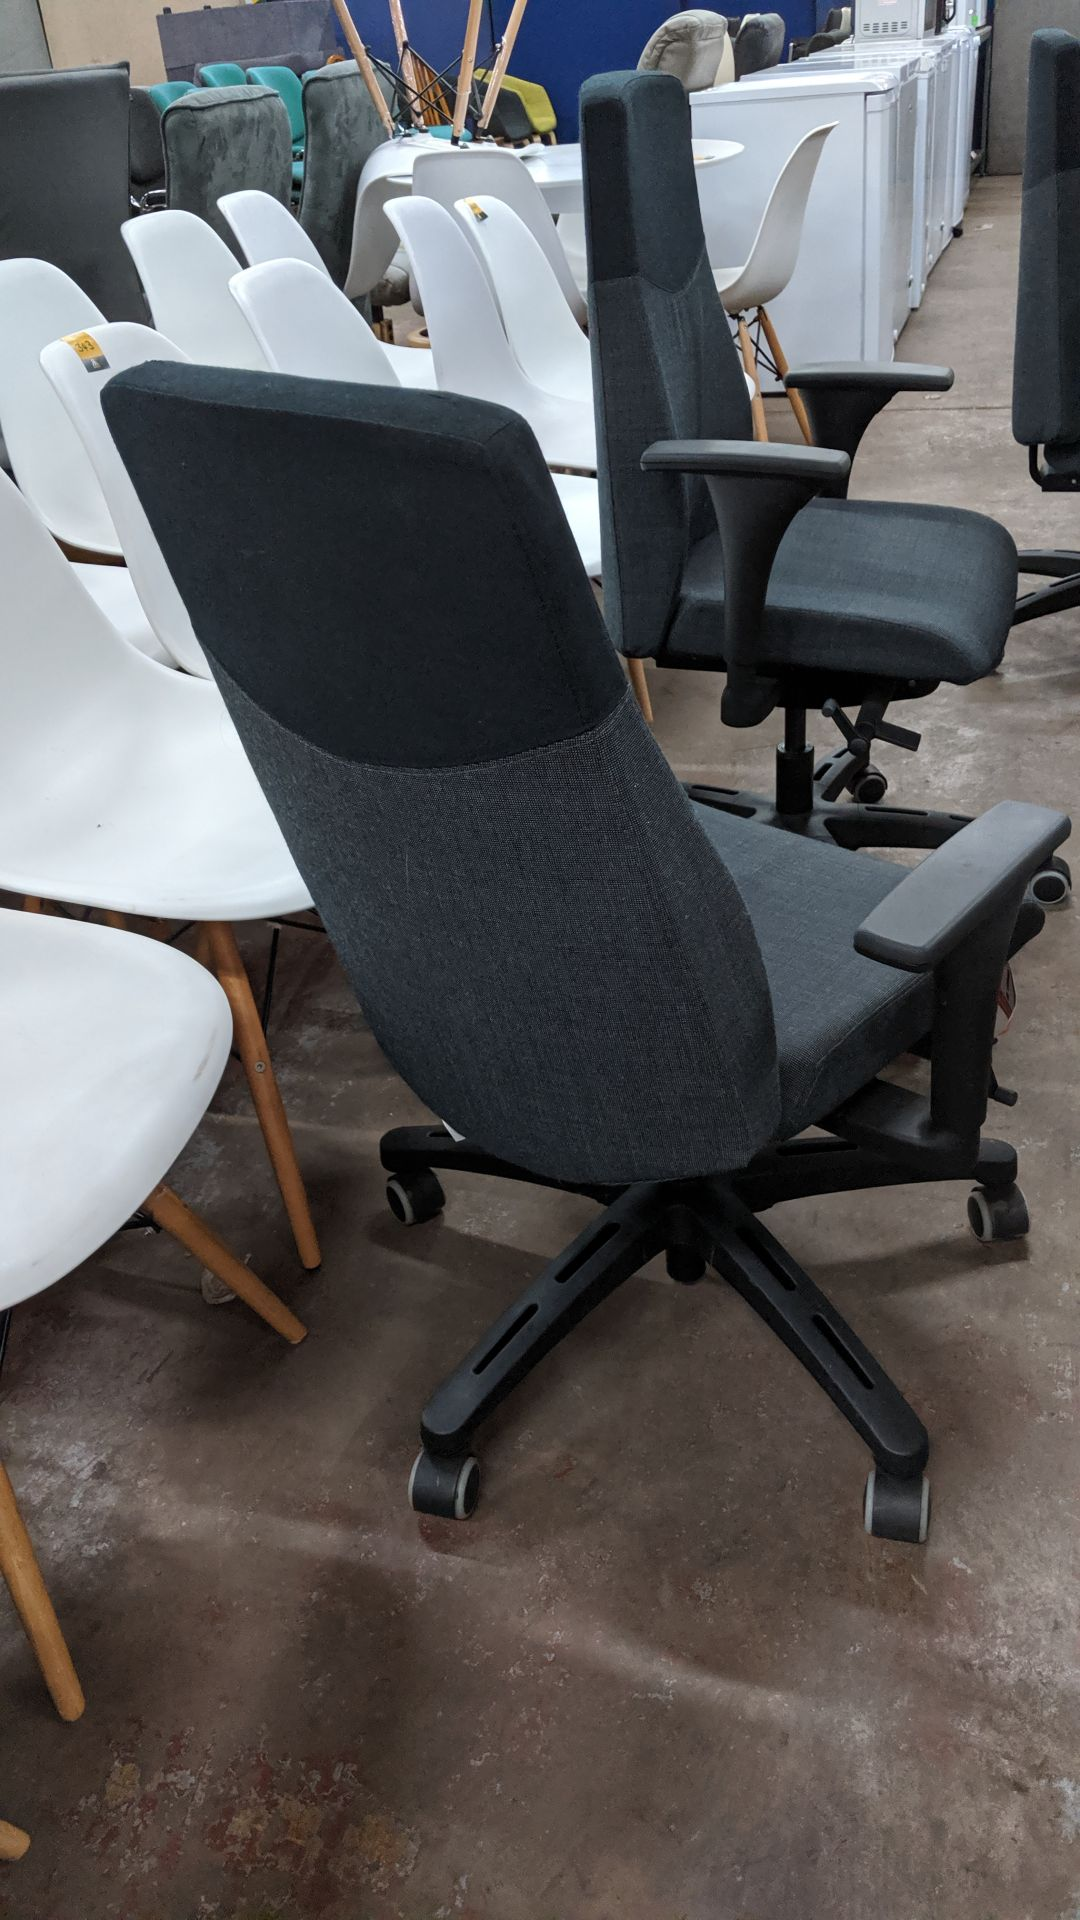 Lot 317 - Pair of modern grey & black executive chairs with arms NB Lots 317 - 319 each consist of a pair of